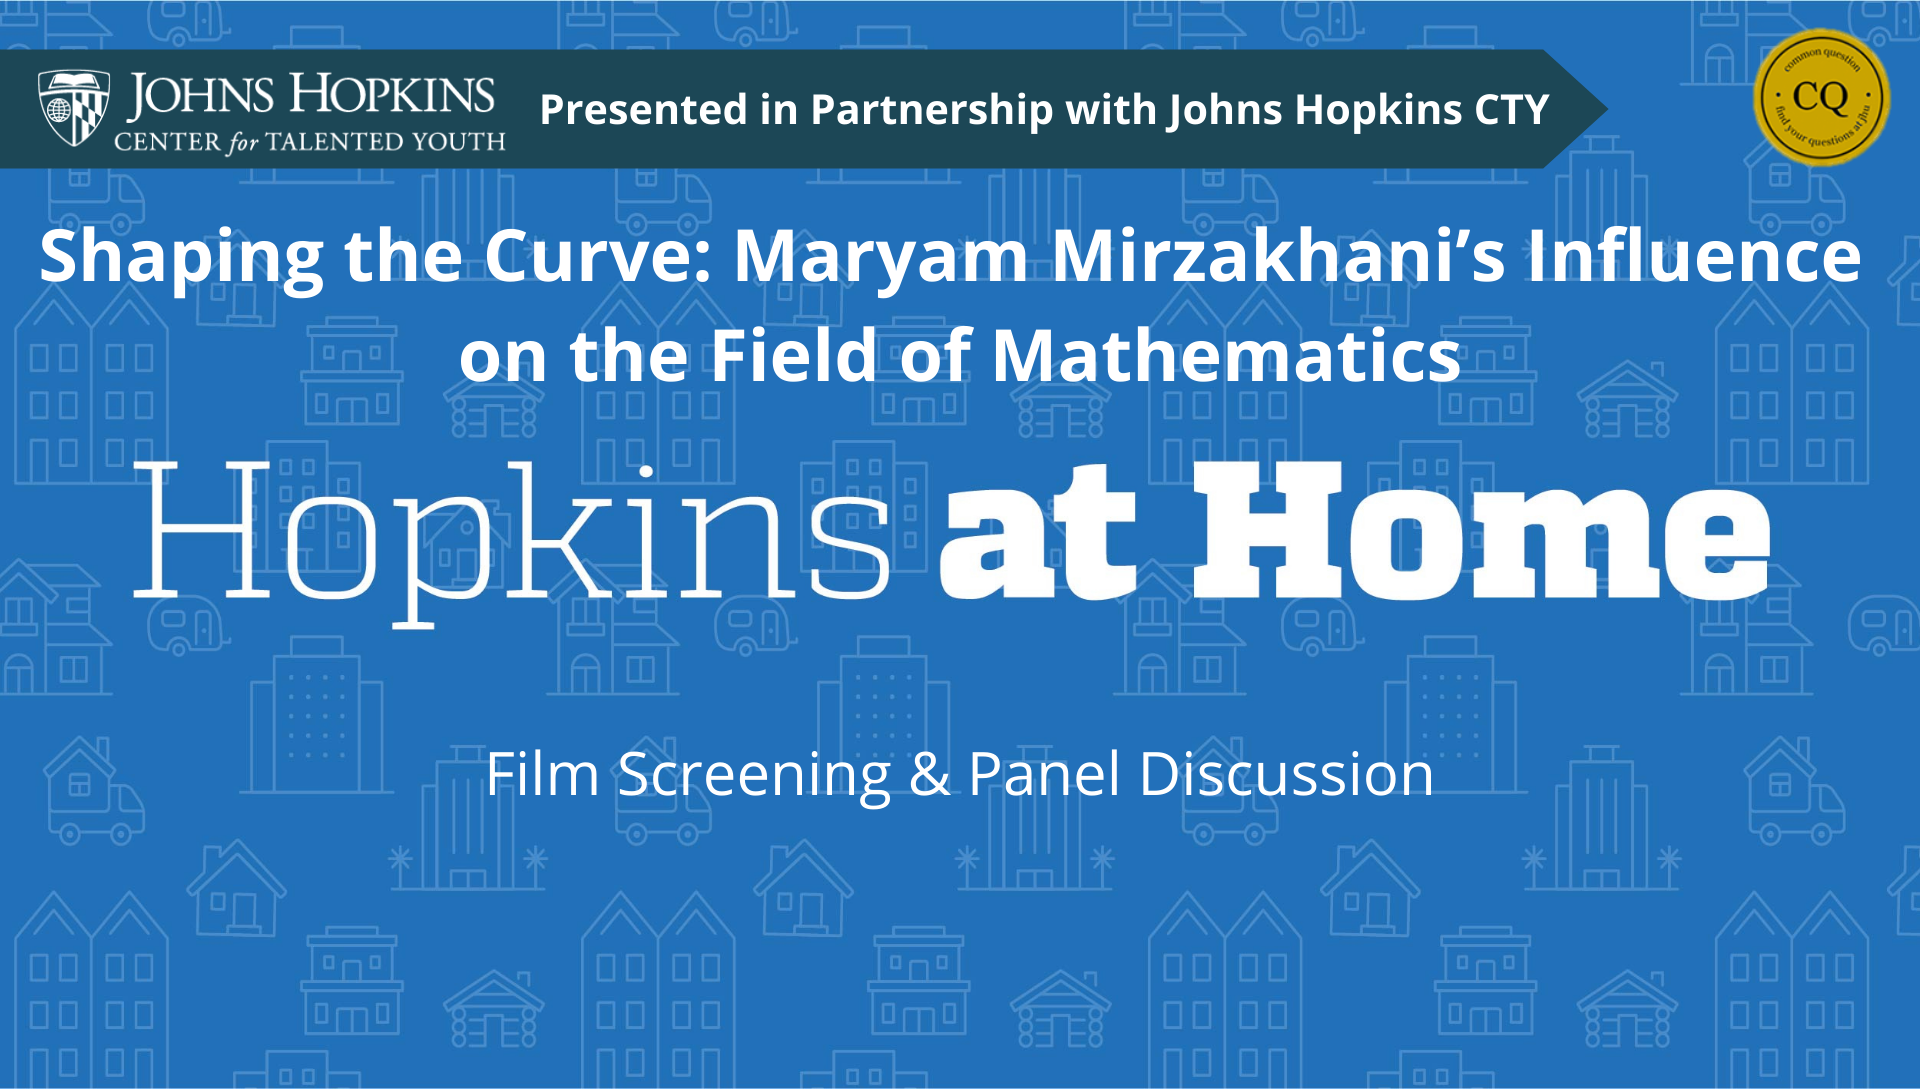 Shaping the Curve: Maryam Mirzakhani's Influence on the Field of Mathematics header image